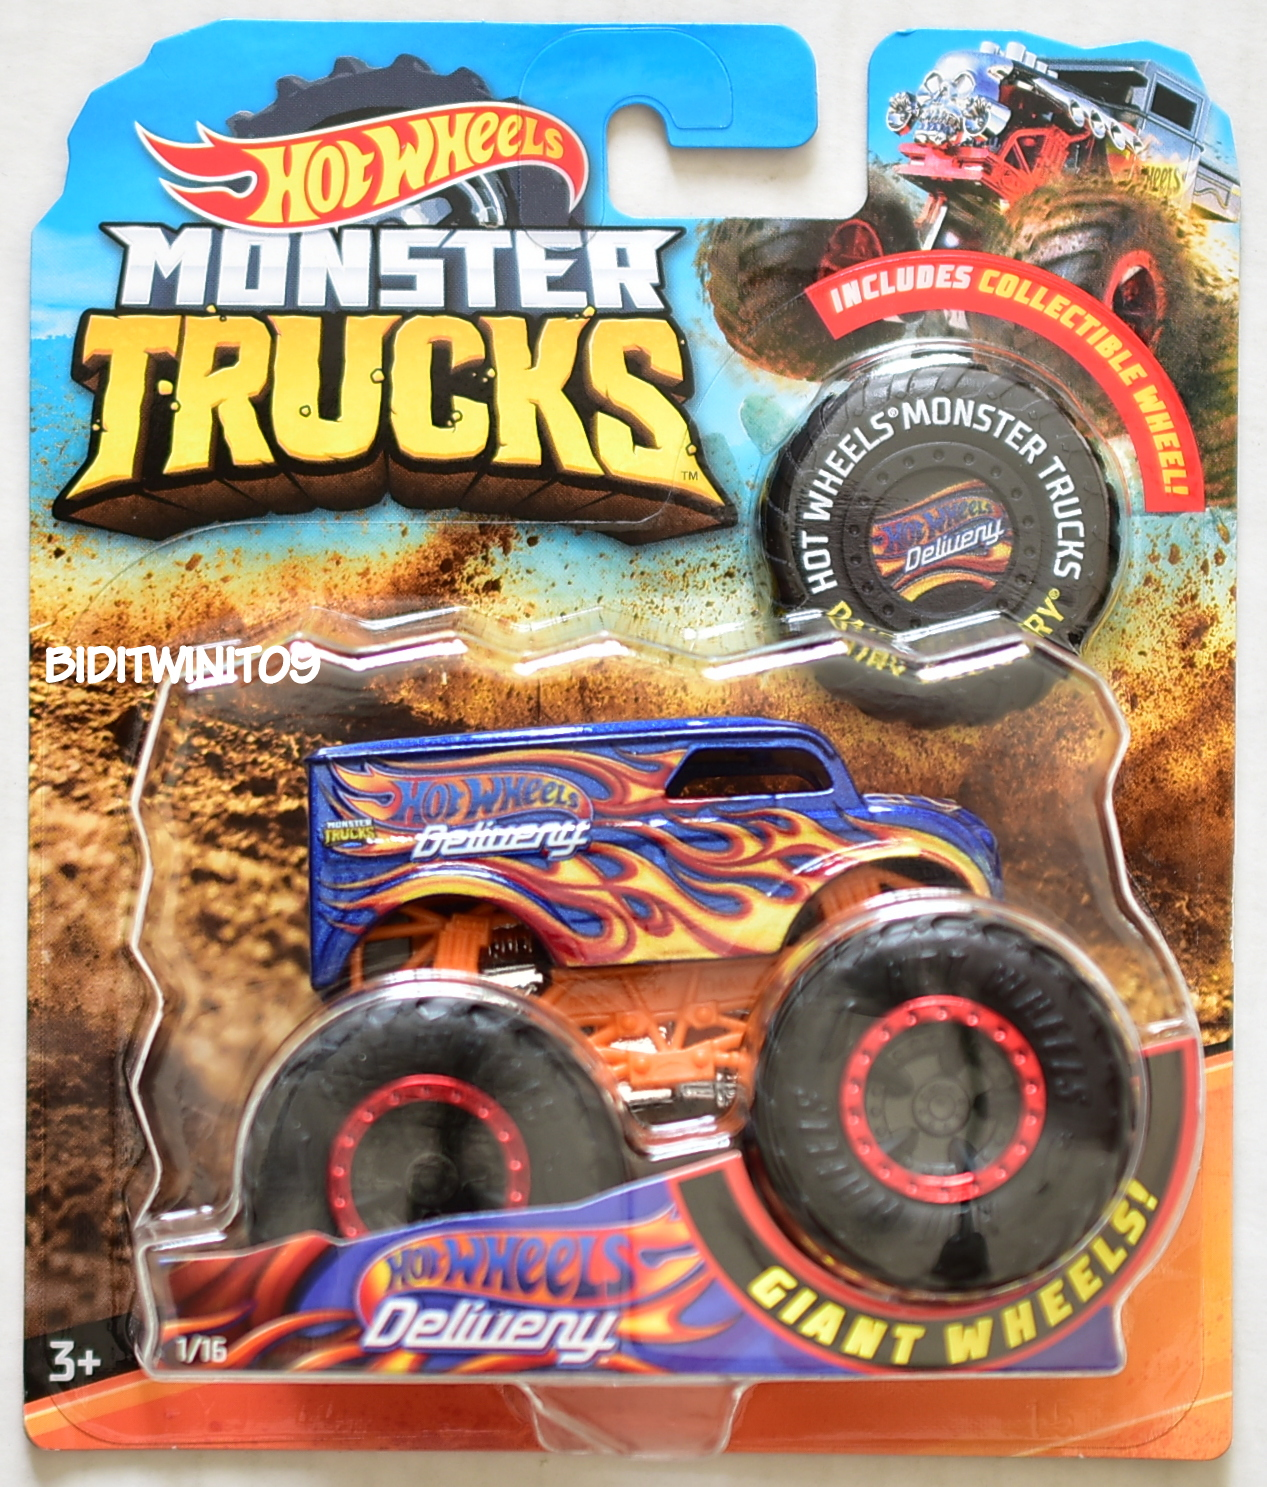 HOT WHEELS 2018 MONSTER TRUCKS GIANT WHEELS DELIVERY #1/16